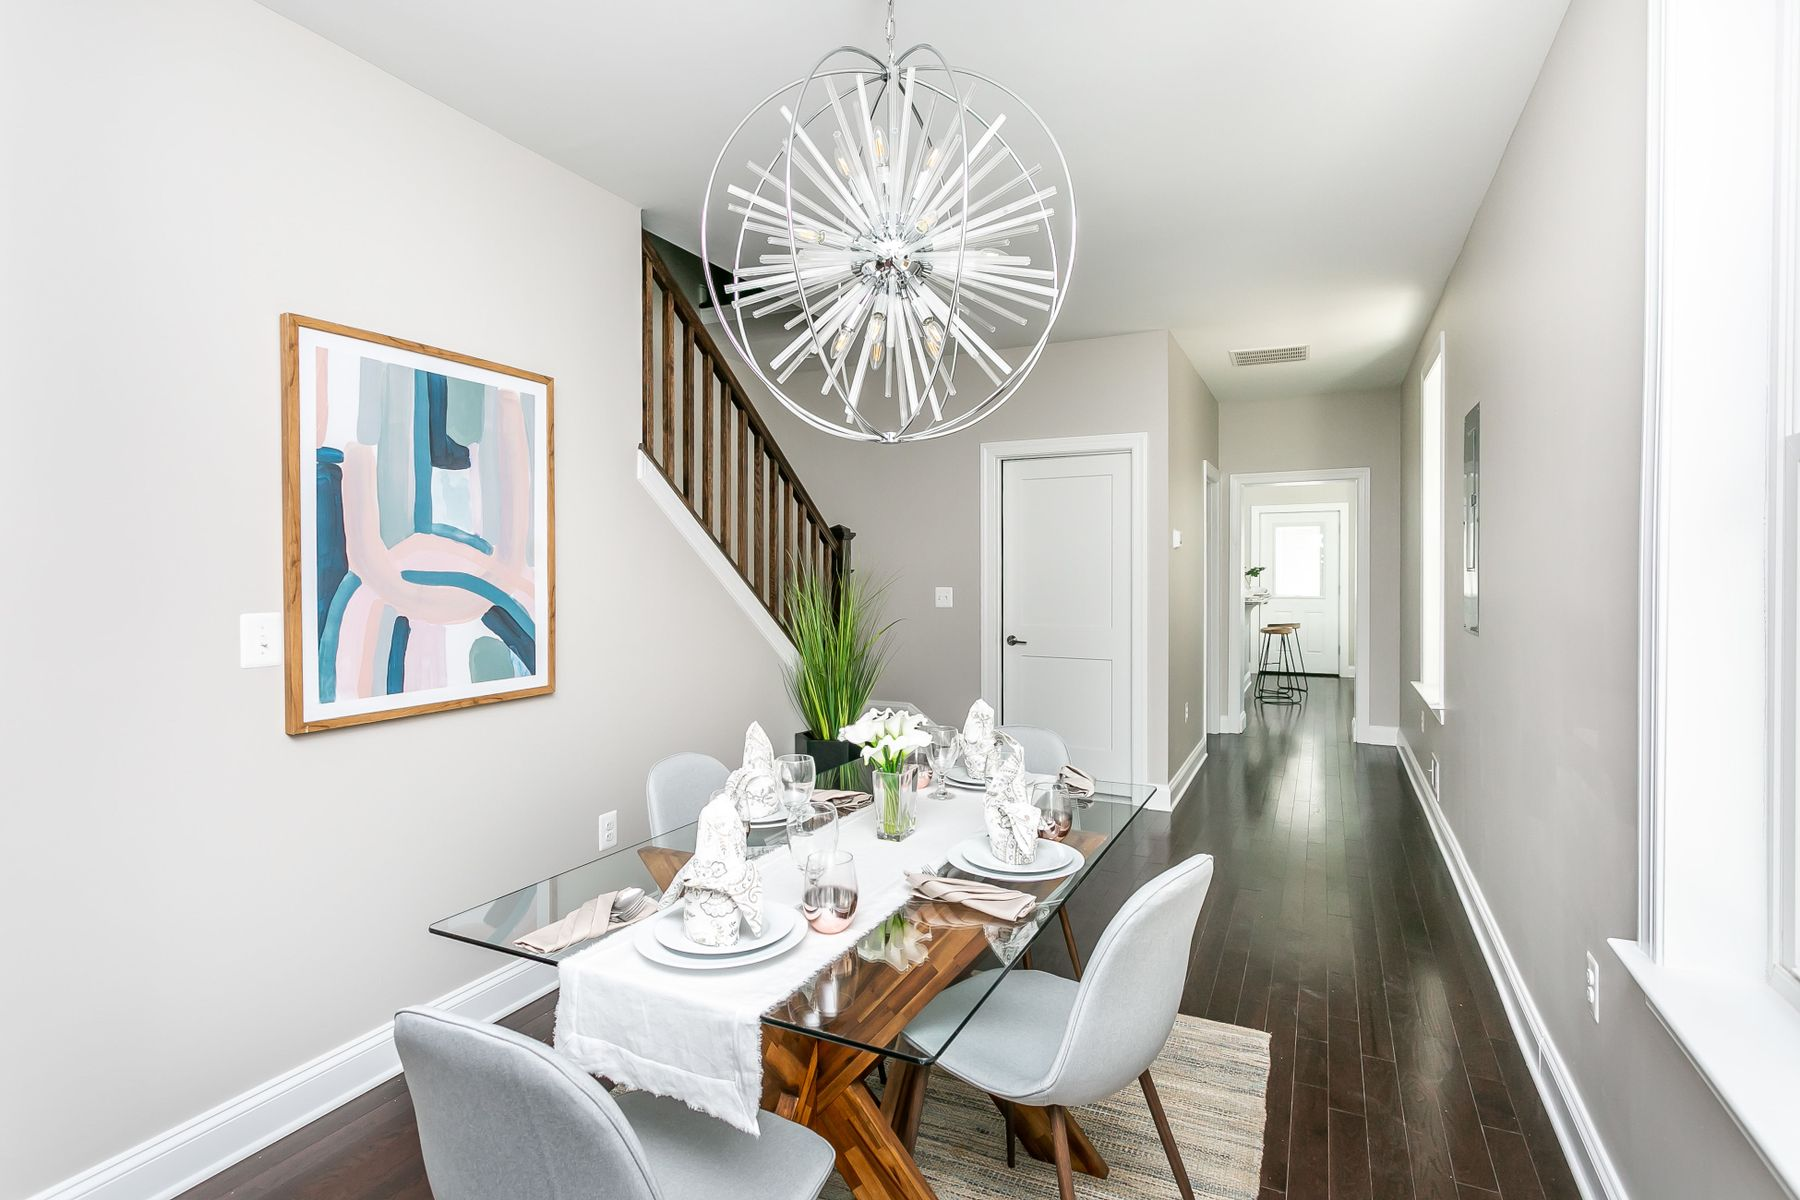 Dining room and table in renovated space